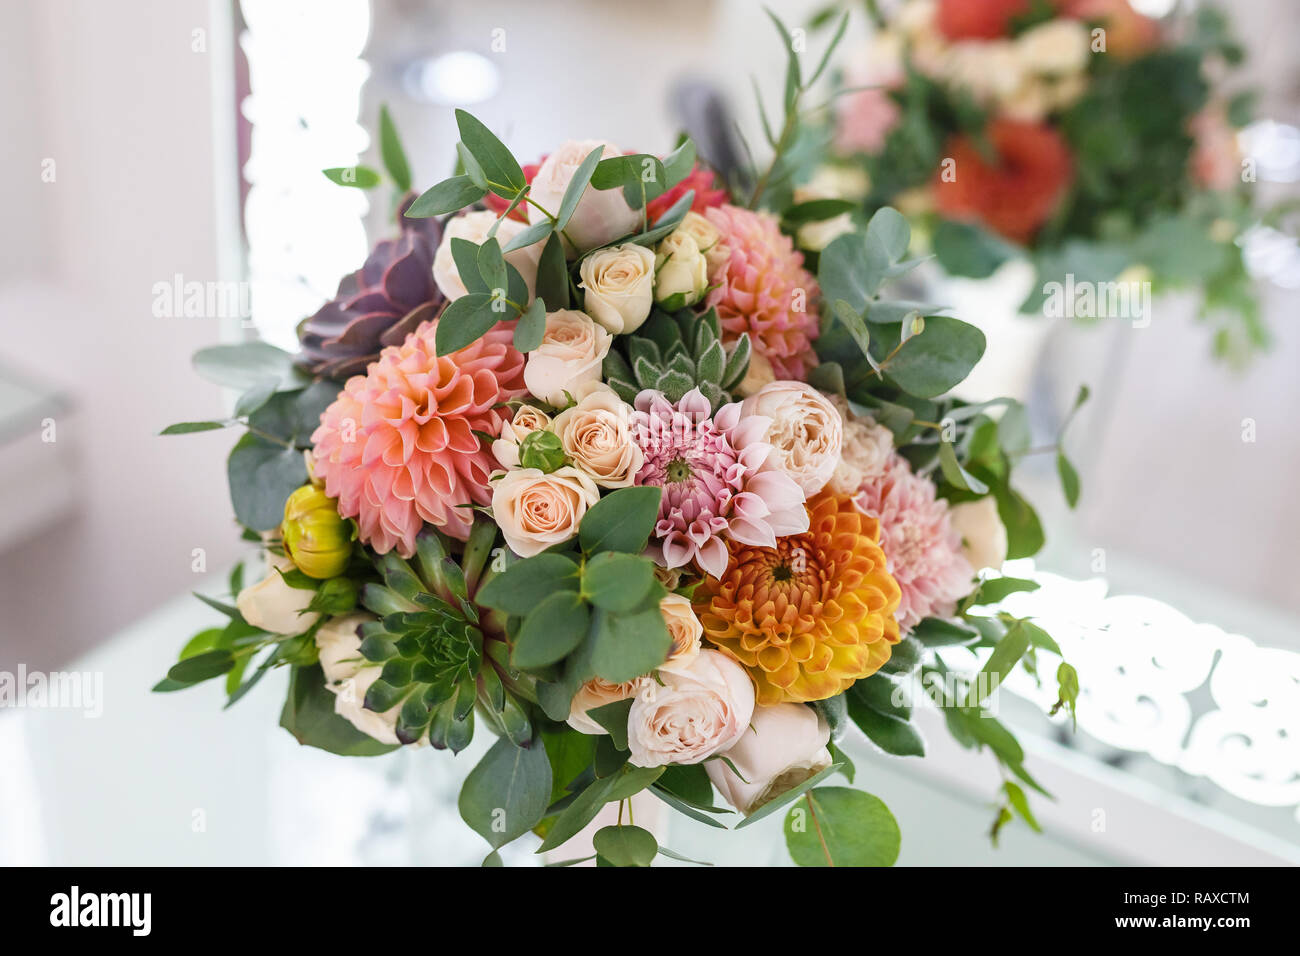 Bright Wedding Bouquet Of Summer Dahlias And Roses Stock Photo Alamy